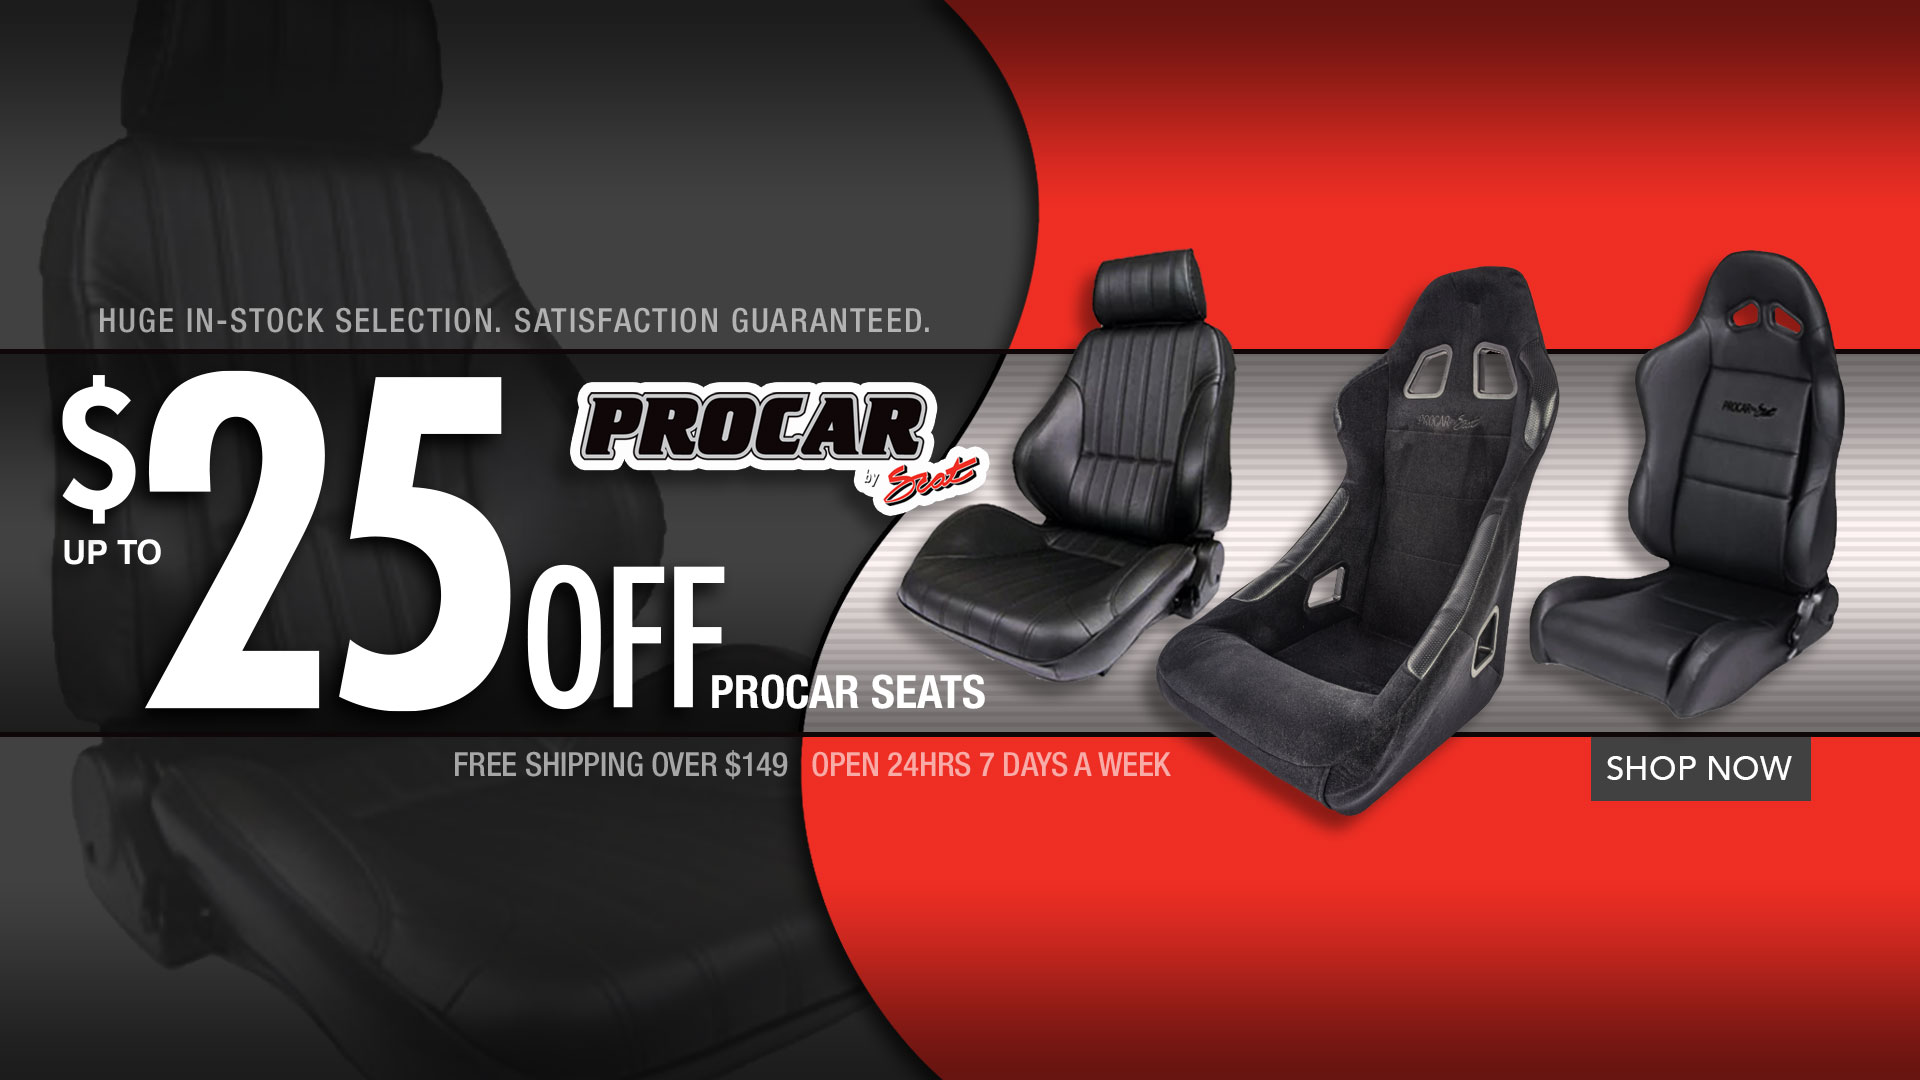 Save up to $25 Procar Seats